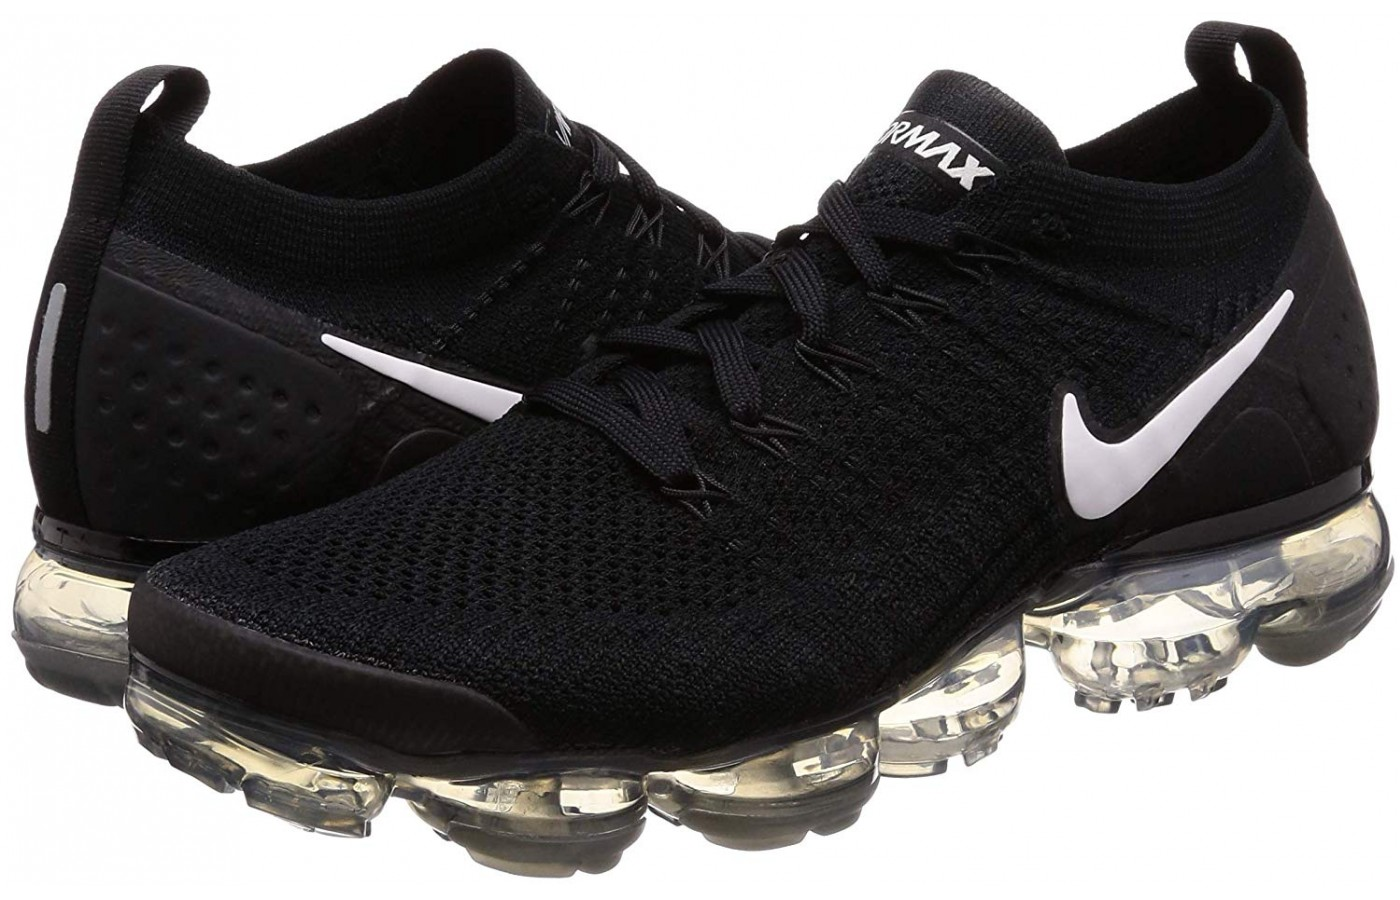 new arrival e7a7f d9645 Nike Air VaporMax Flyknit 2 Reviewed & Rated in 2019 ...